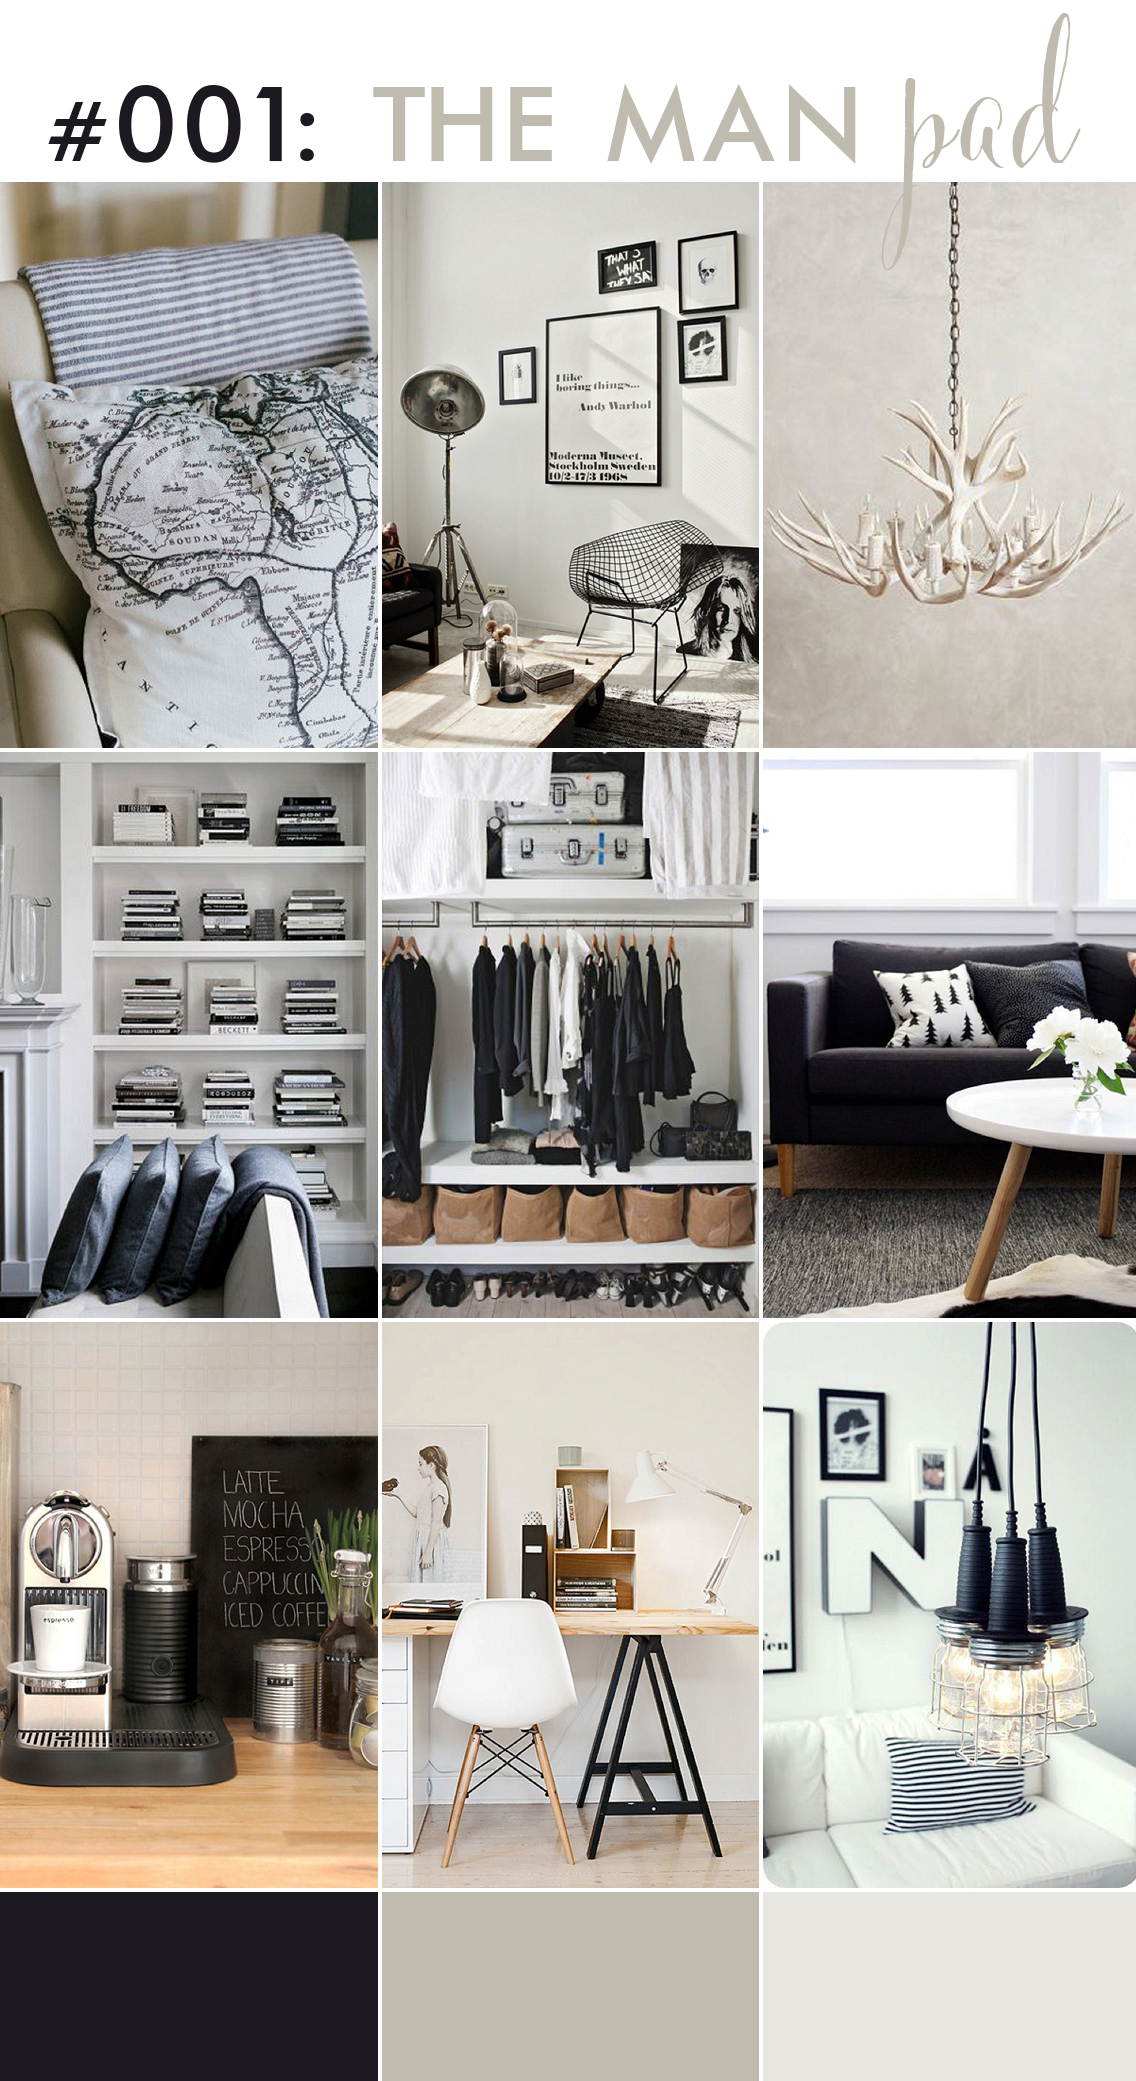 monochrome interior inspiration